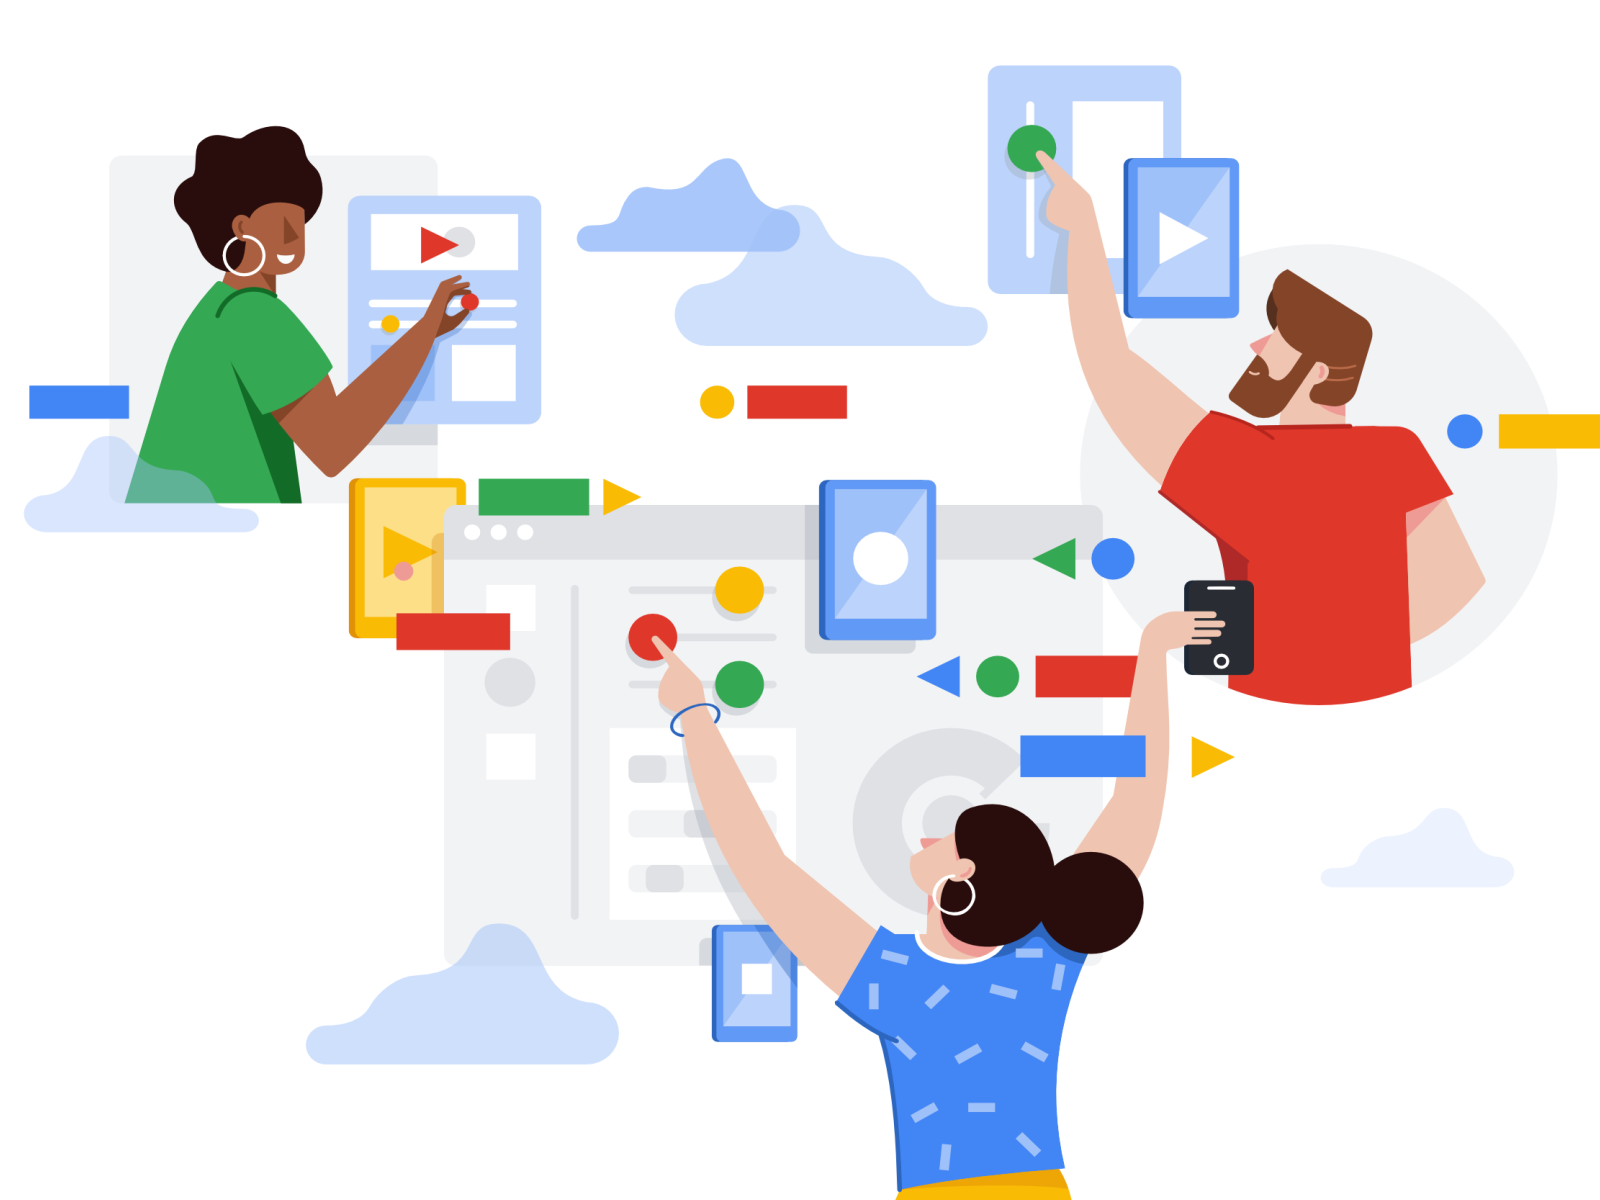 Google Cloud Identity - Illustration by Pawel Olek on Dribbble